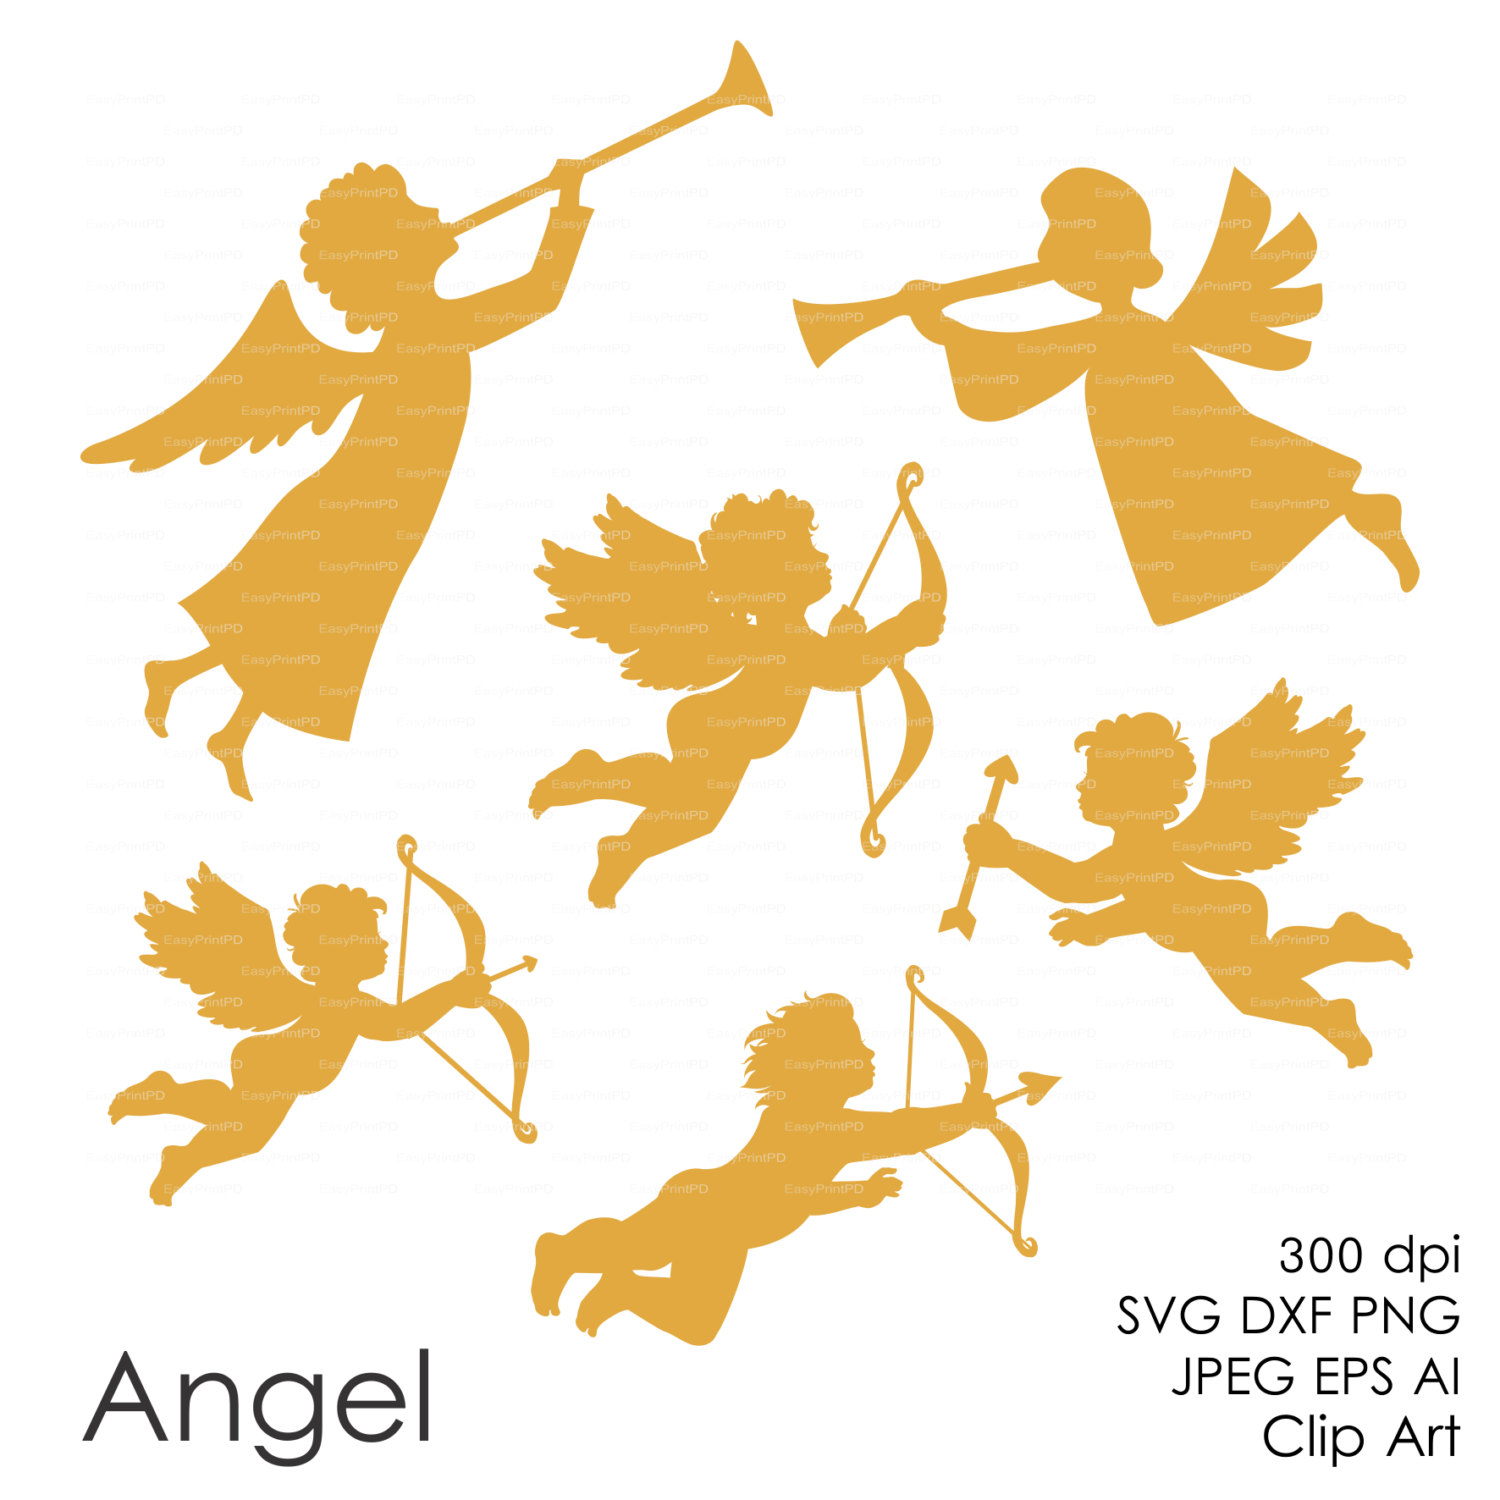 Heaven clipart angel Like this ai dxf Angel